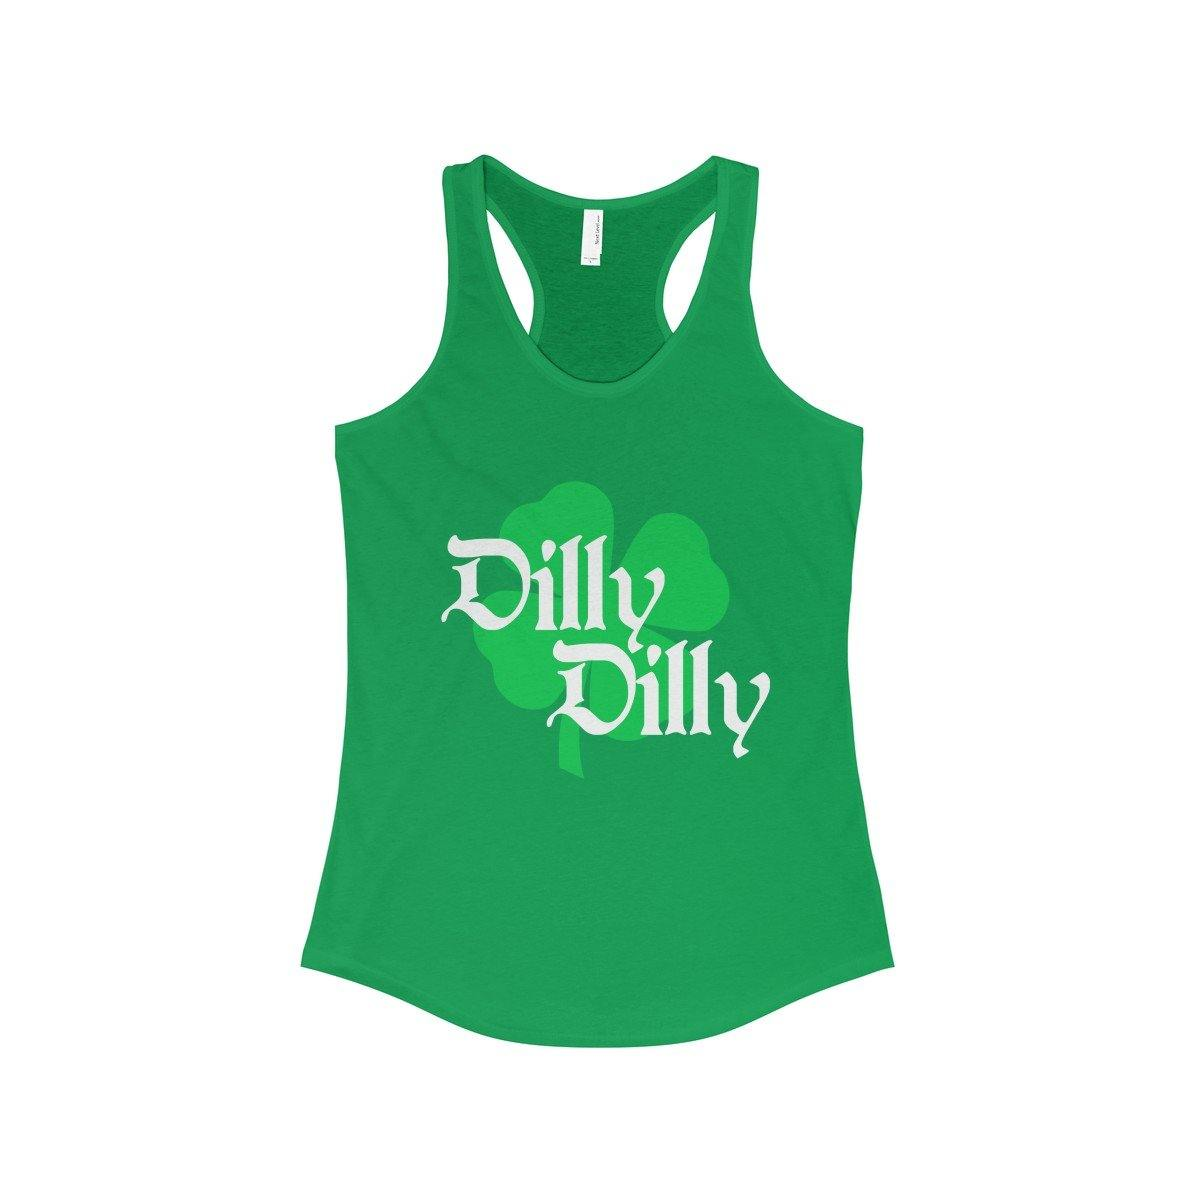 98e760eaac210 Buy ST. Patricks Day Dilly Dilly Clover Funny Beer Drinking Womens  Racerback Tank Top at Miss Deplorable for only  25.00